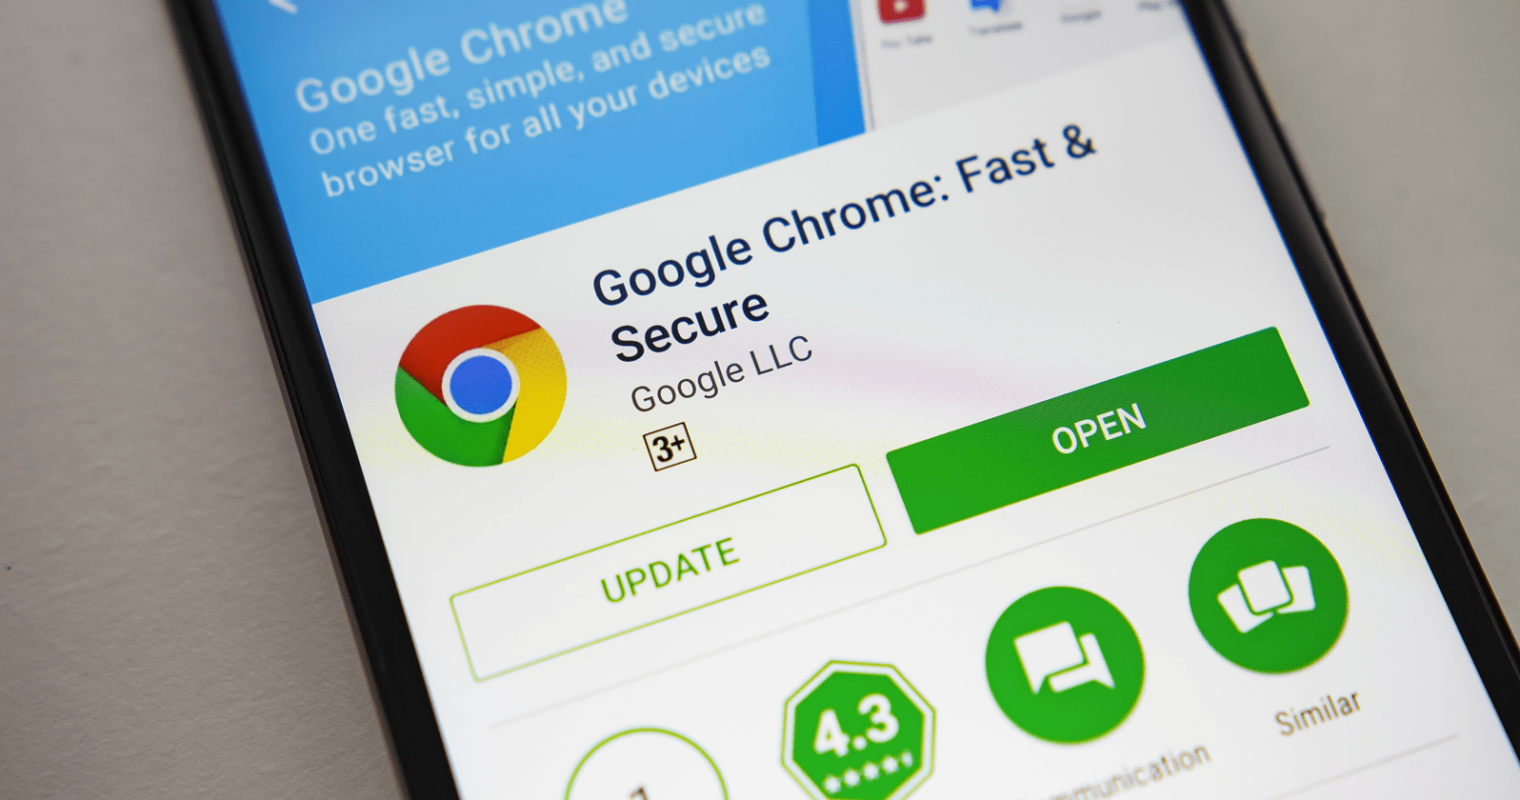 Google is Bringing 'WWW' Back to Chrome URLs Following User Complaints